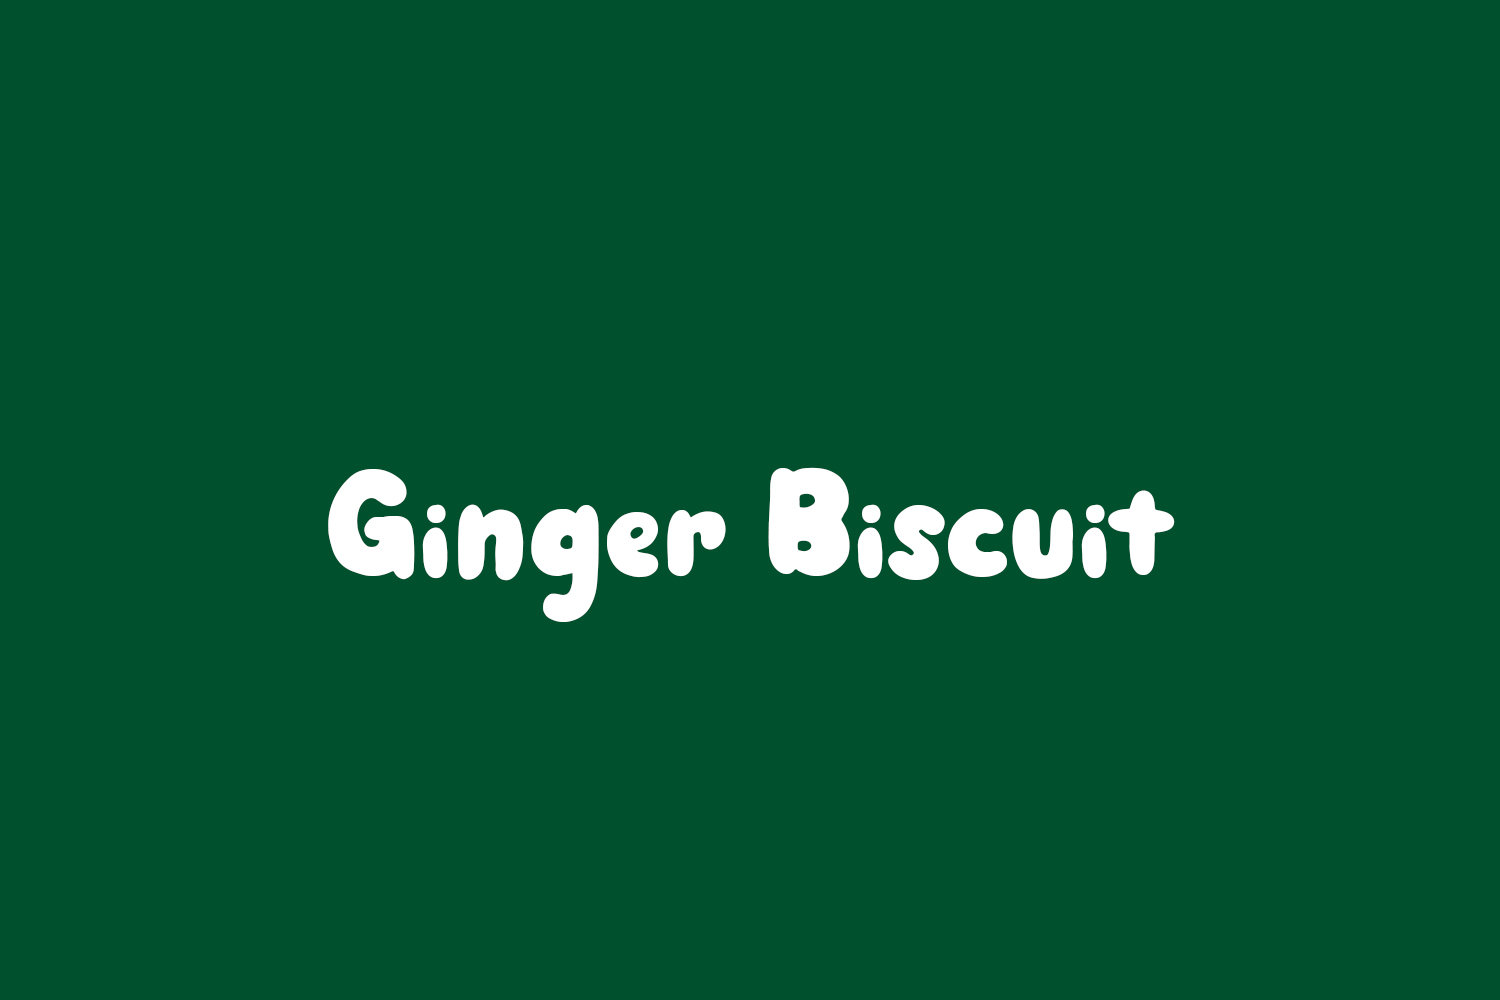 Ginger Biscuit Free Font